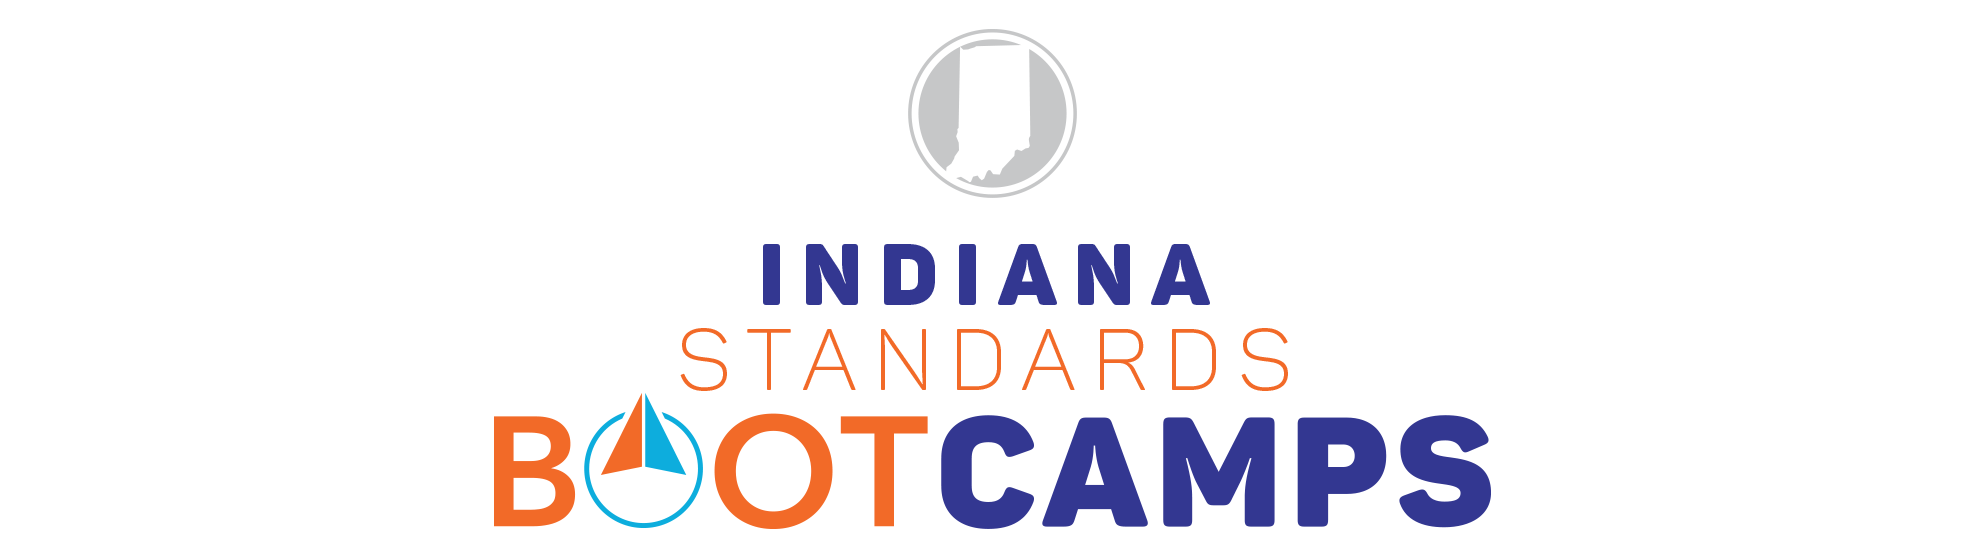 stnd_bootcamps_logo_IN_v1 (2) (1).png